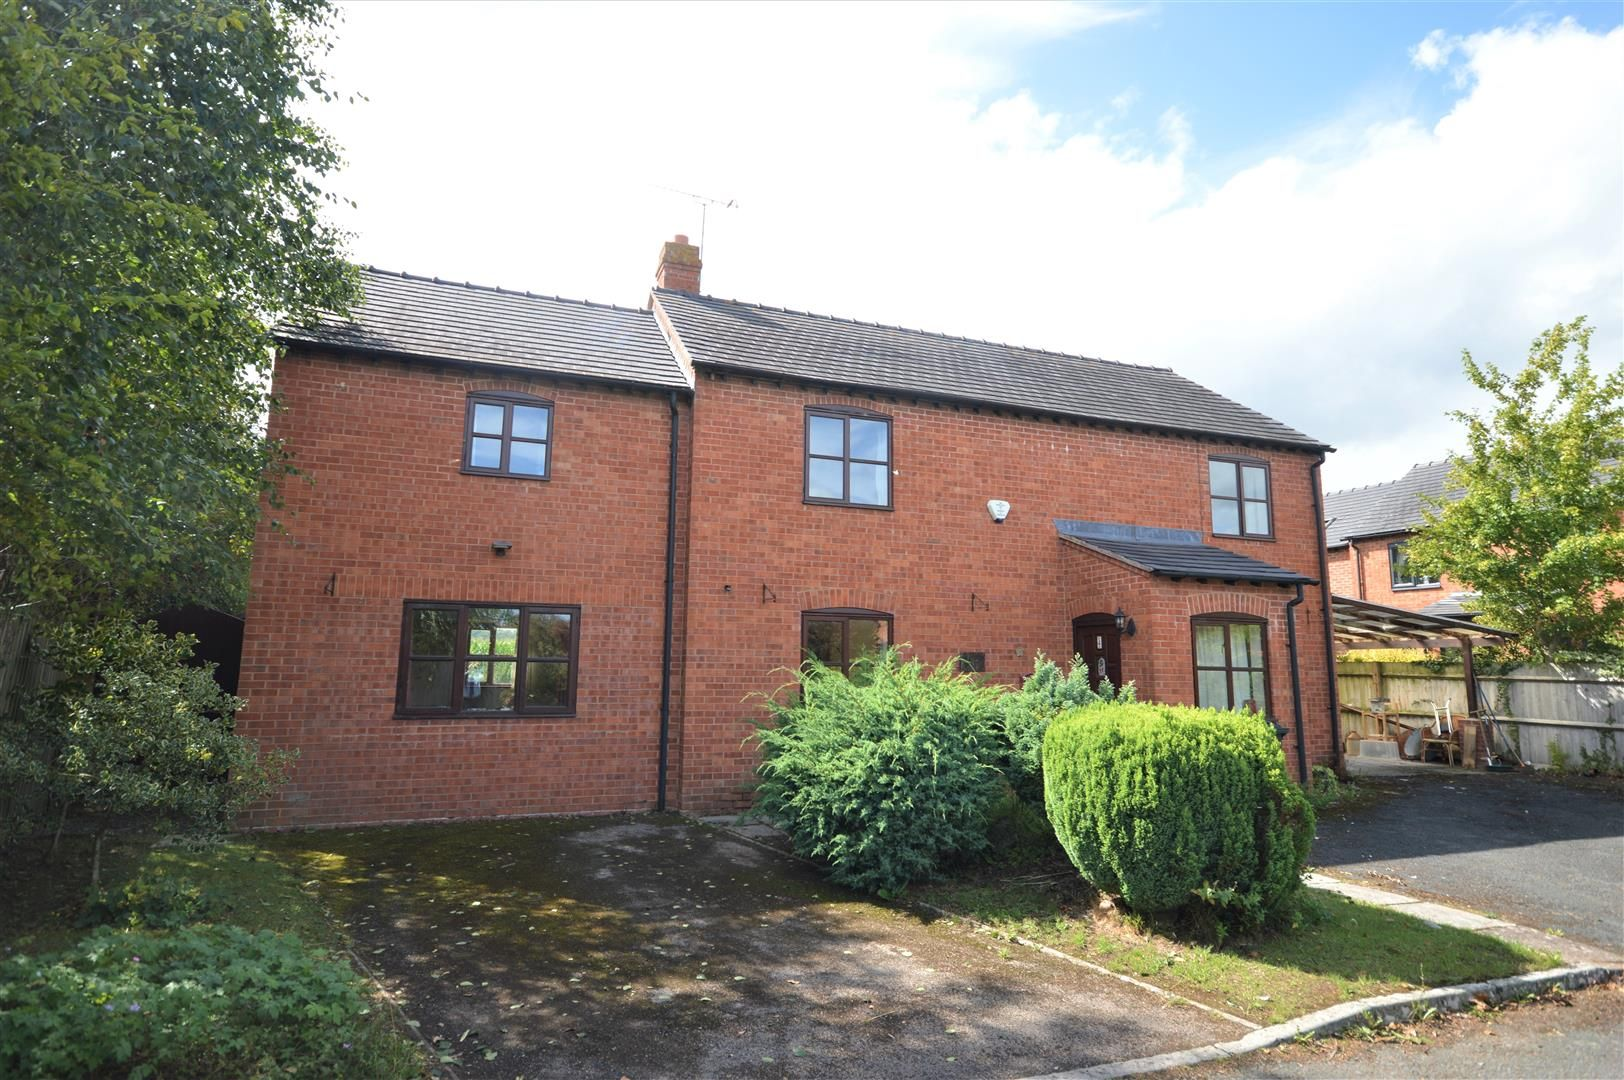 4 bed detached for sale in Bodenham 1